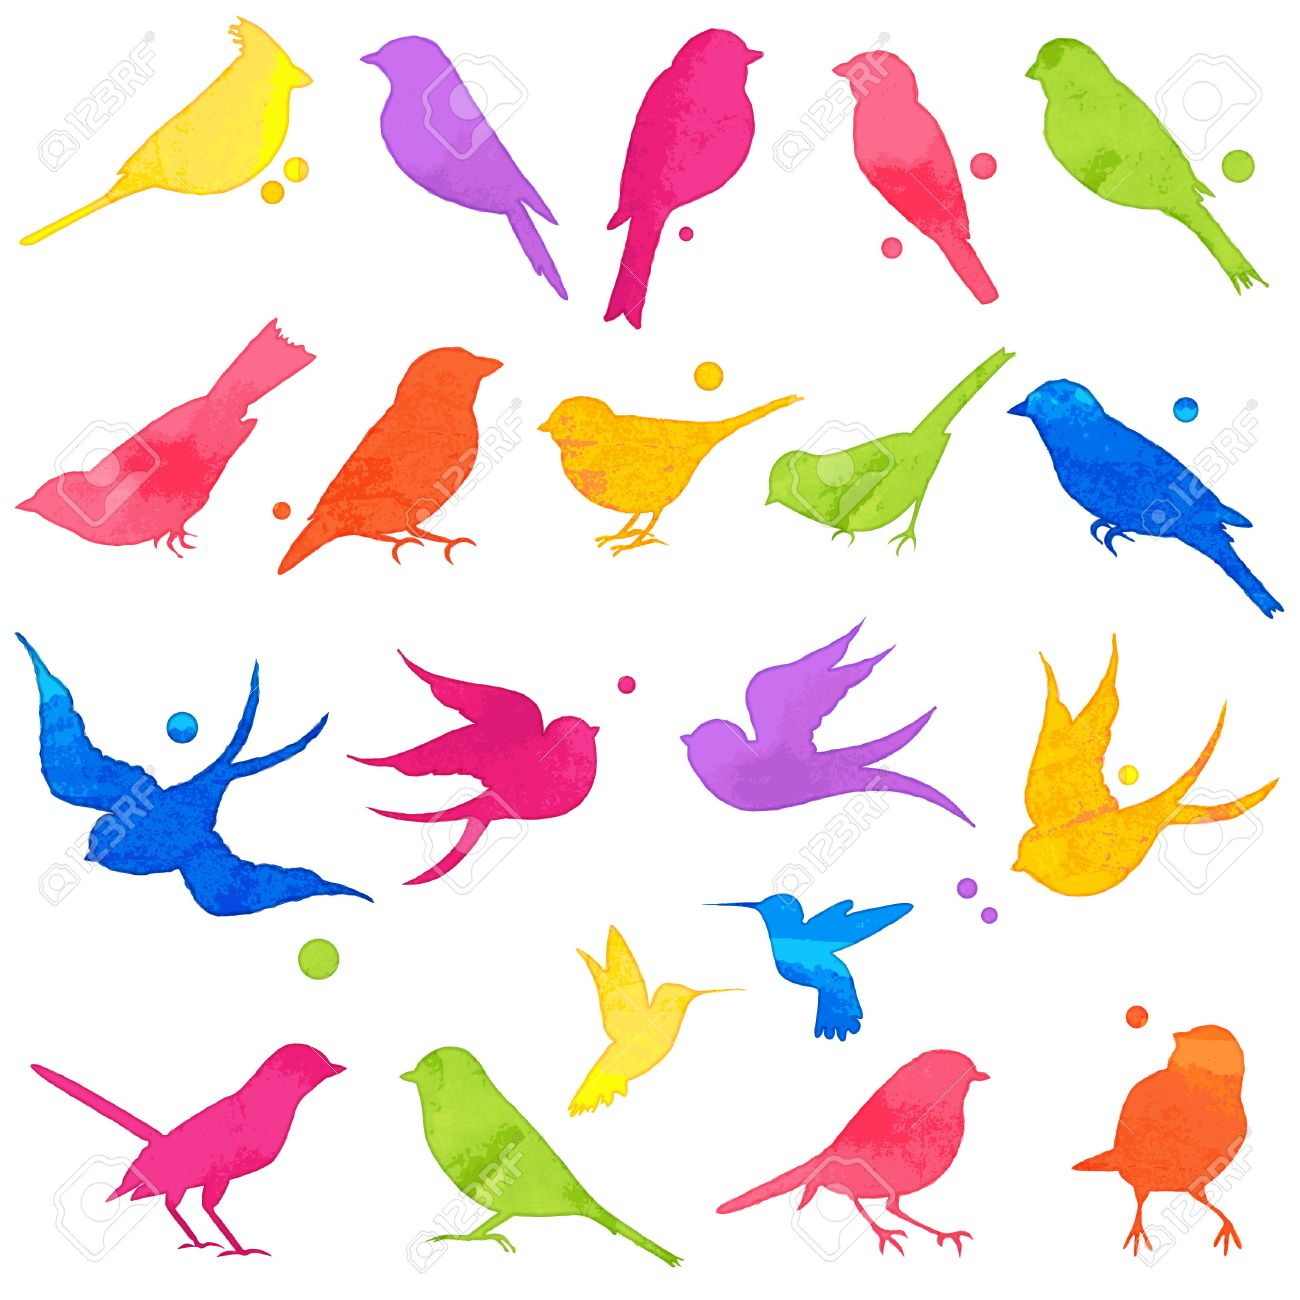 Vector Collection of Bright Watercolor Bird Silhouettes - 43151730